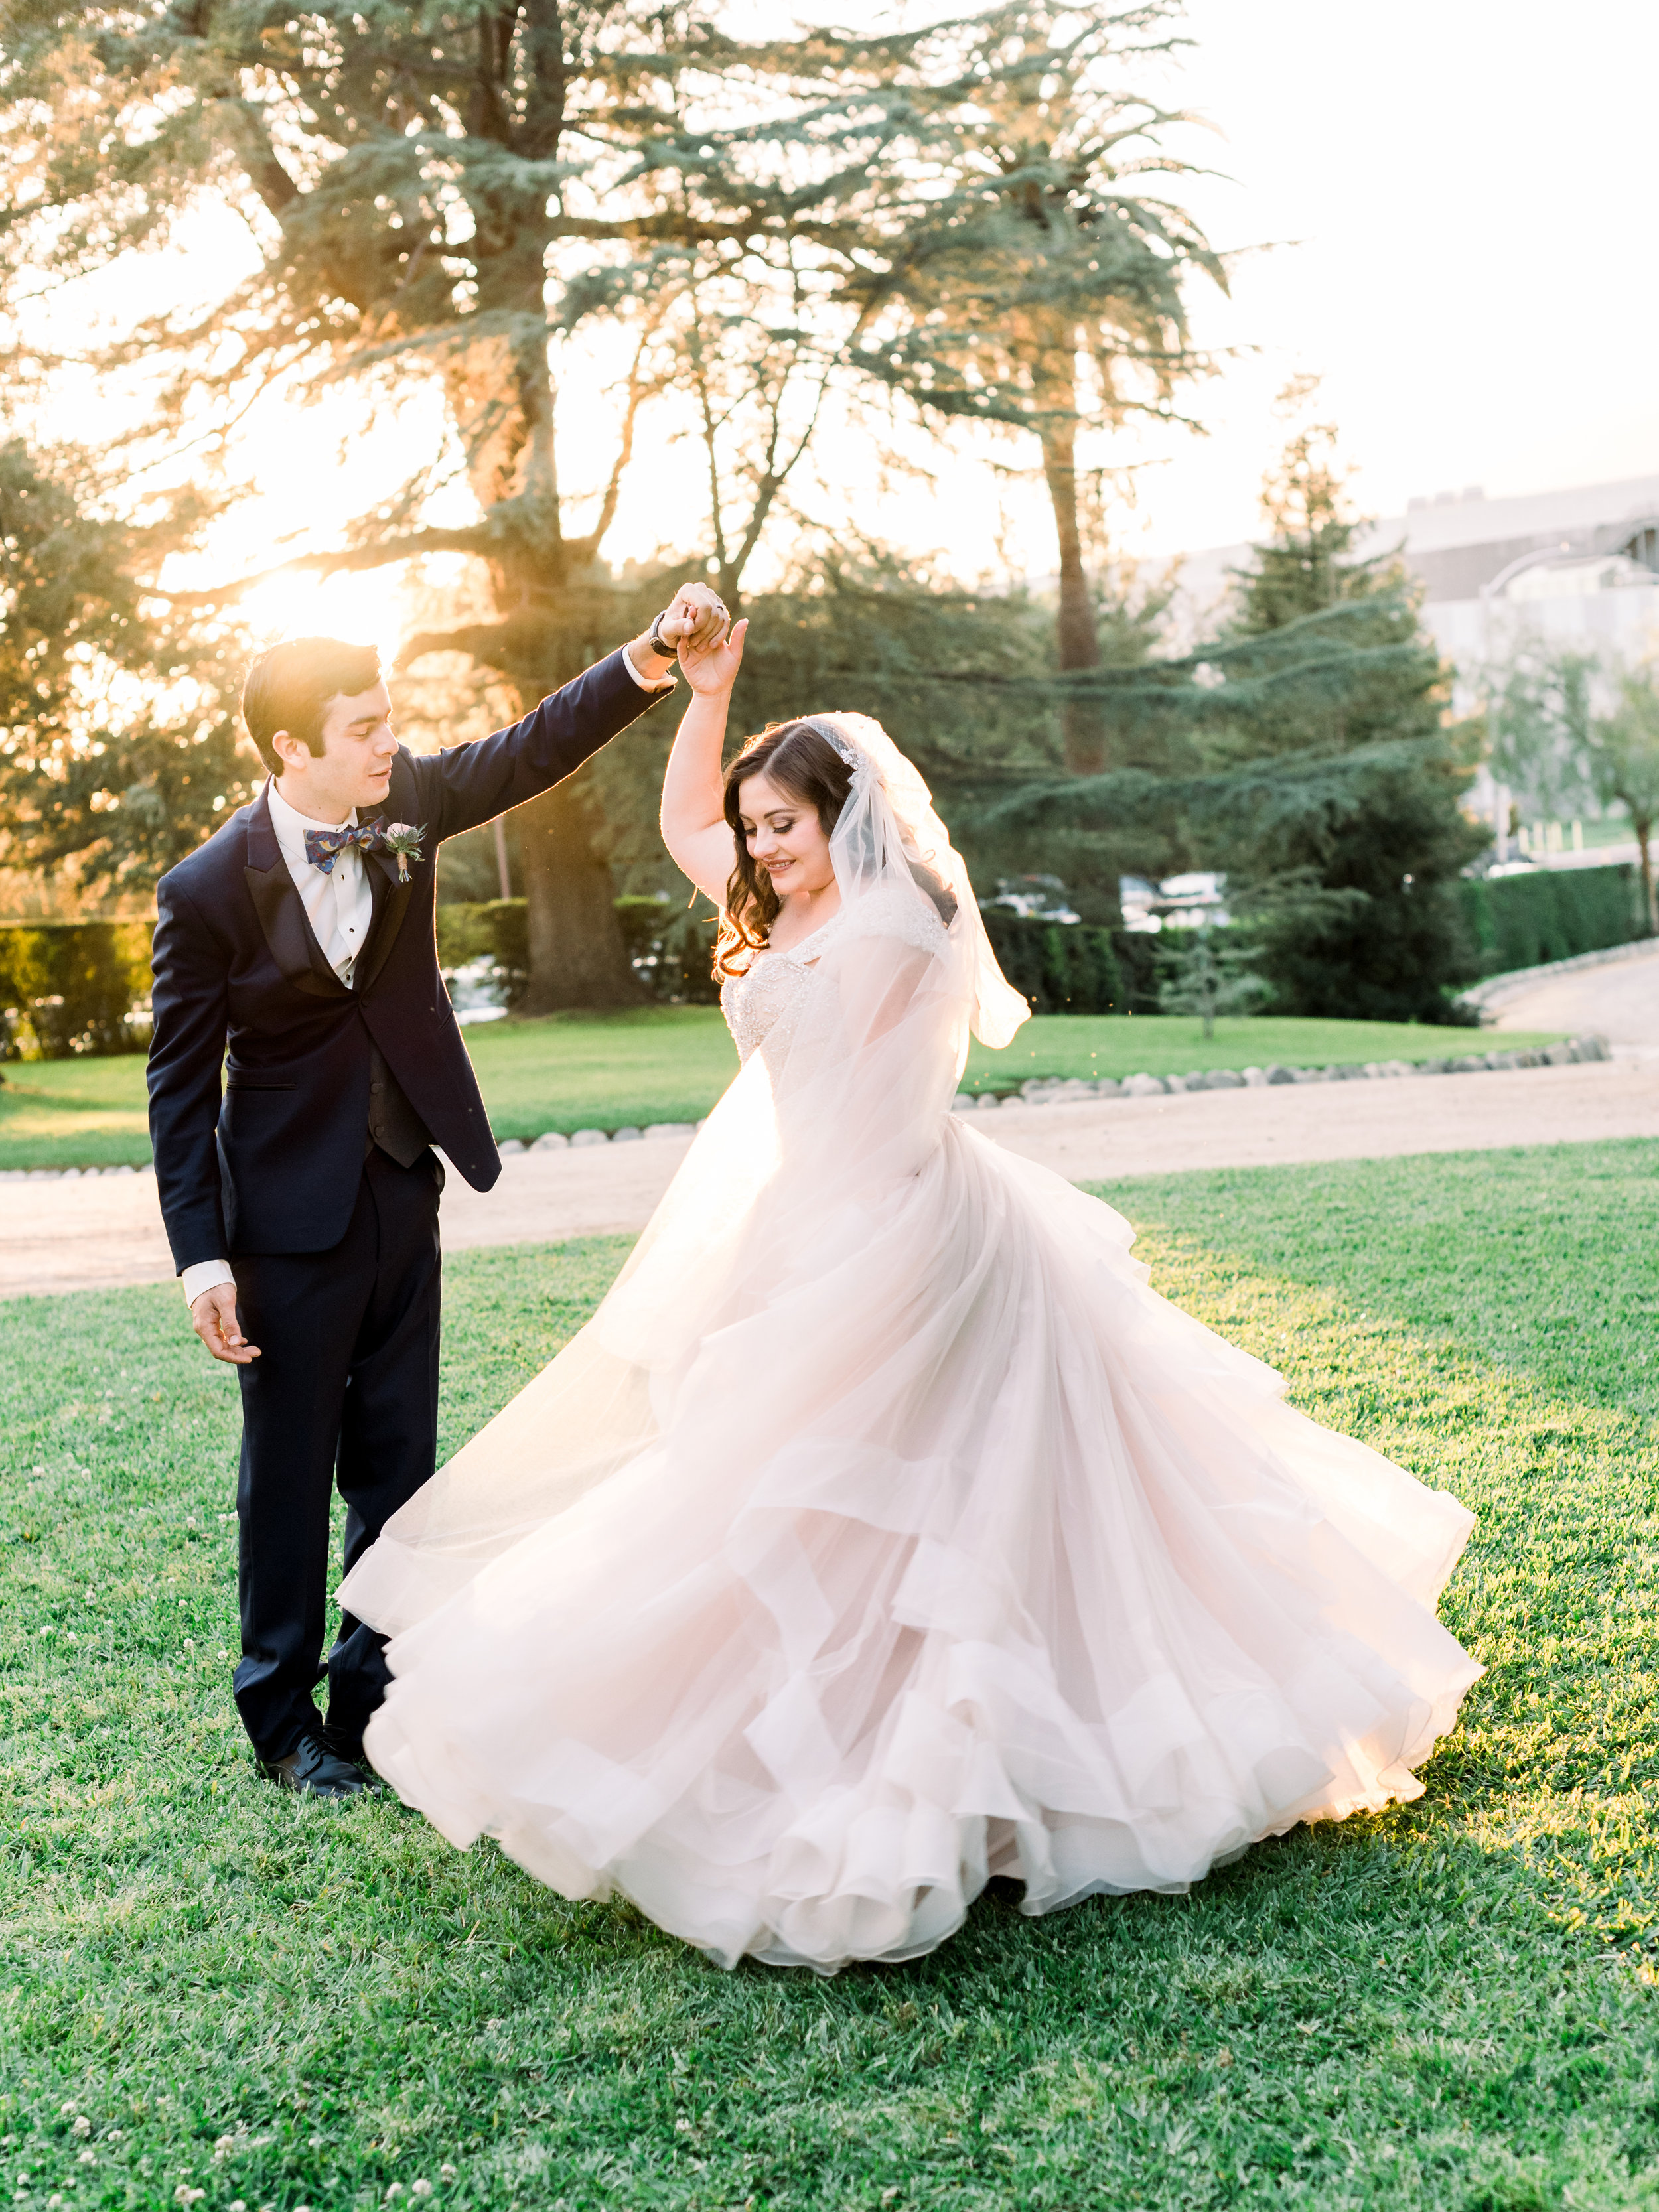 bride-and-groom-being-playful-in-the-sunset.jpg